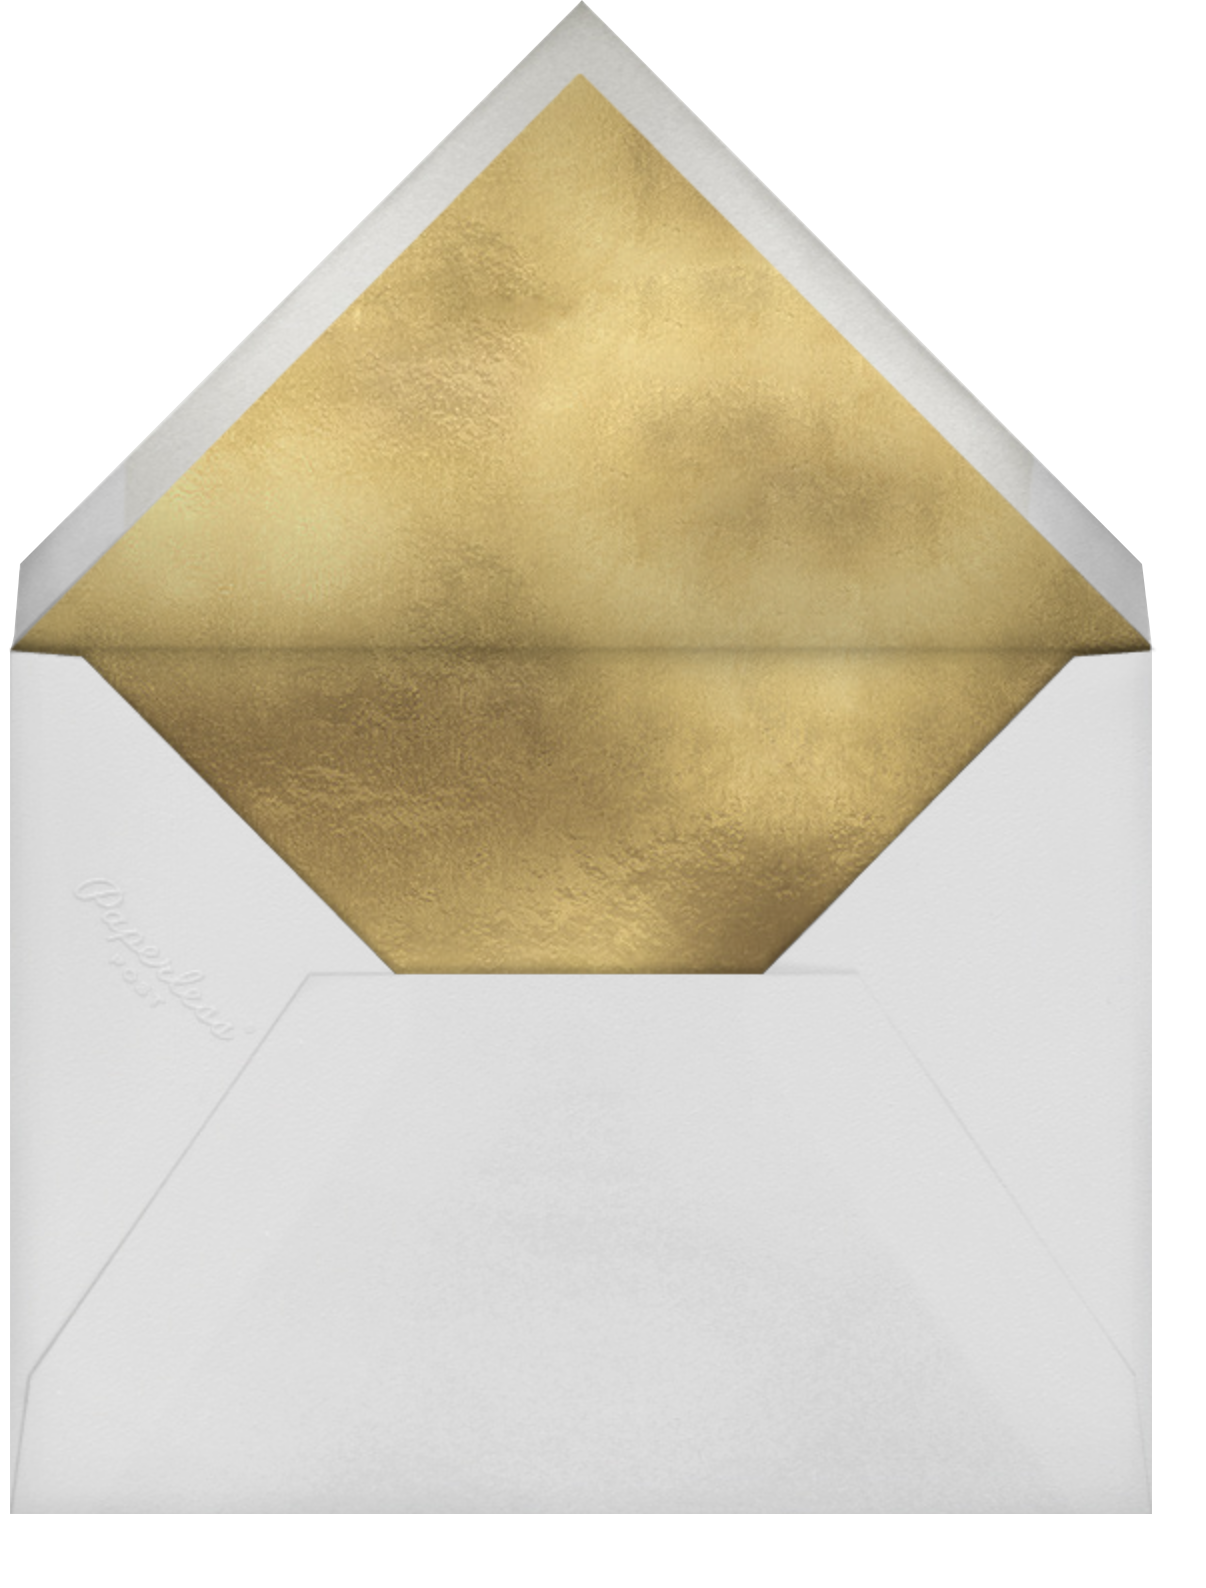 Vellum View - Paperless Post - New Year's Eve - envelope back